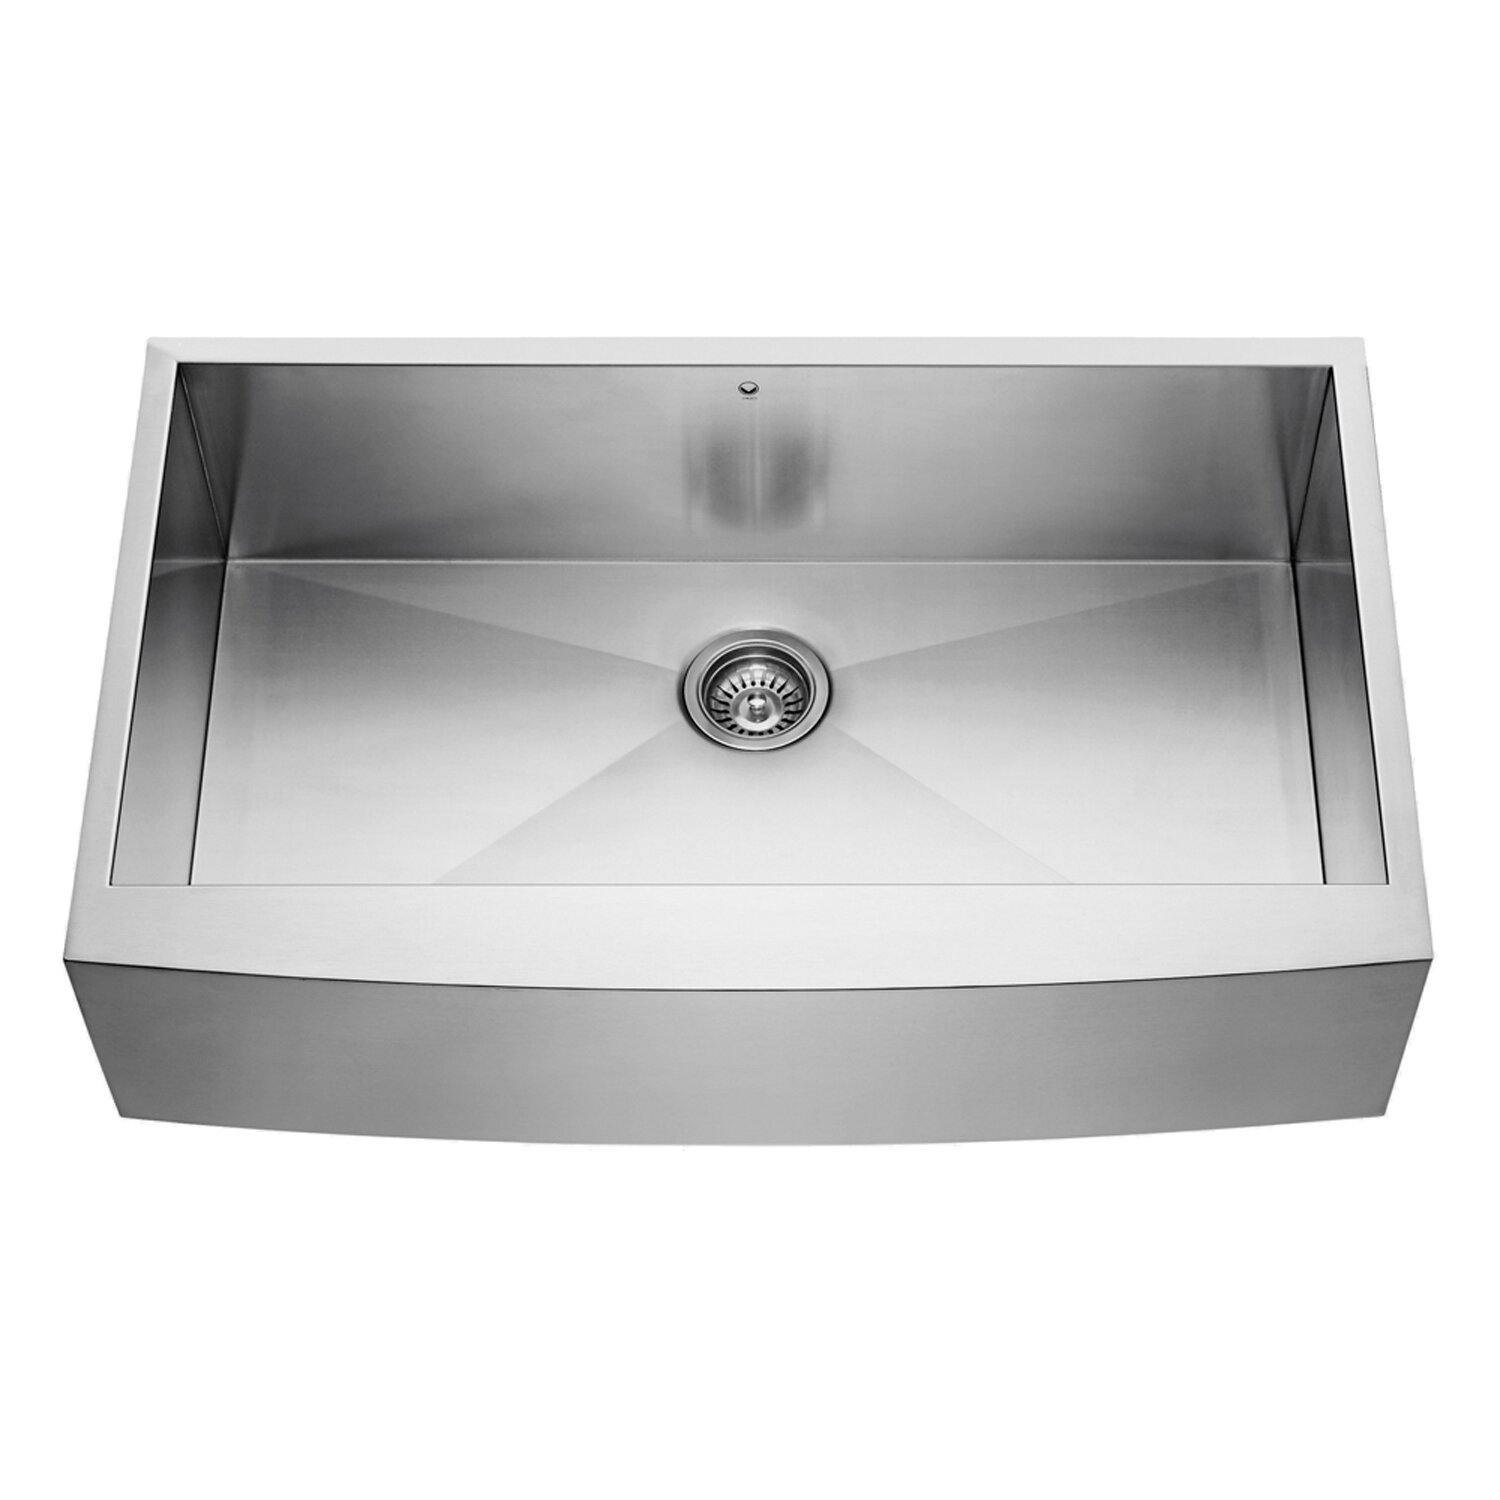 Vigo 36 inch farmhouse apron single bowl 16 gauge Stainless steel farmhouse sink